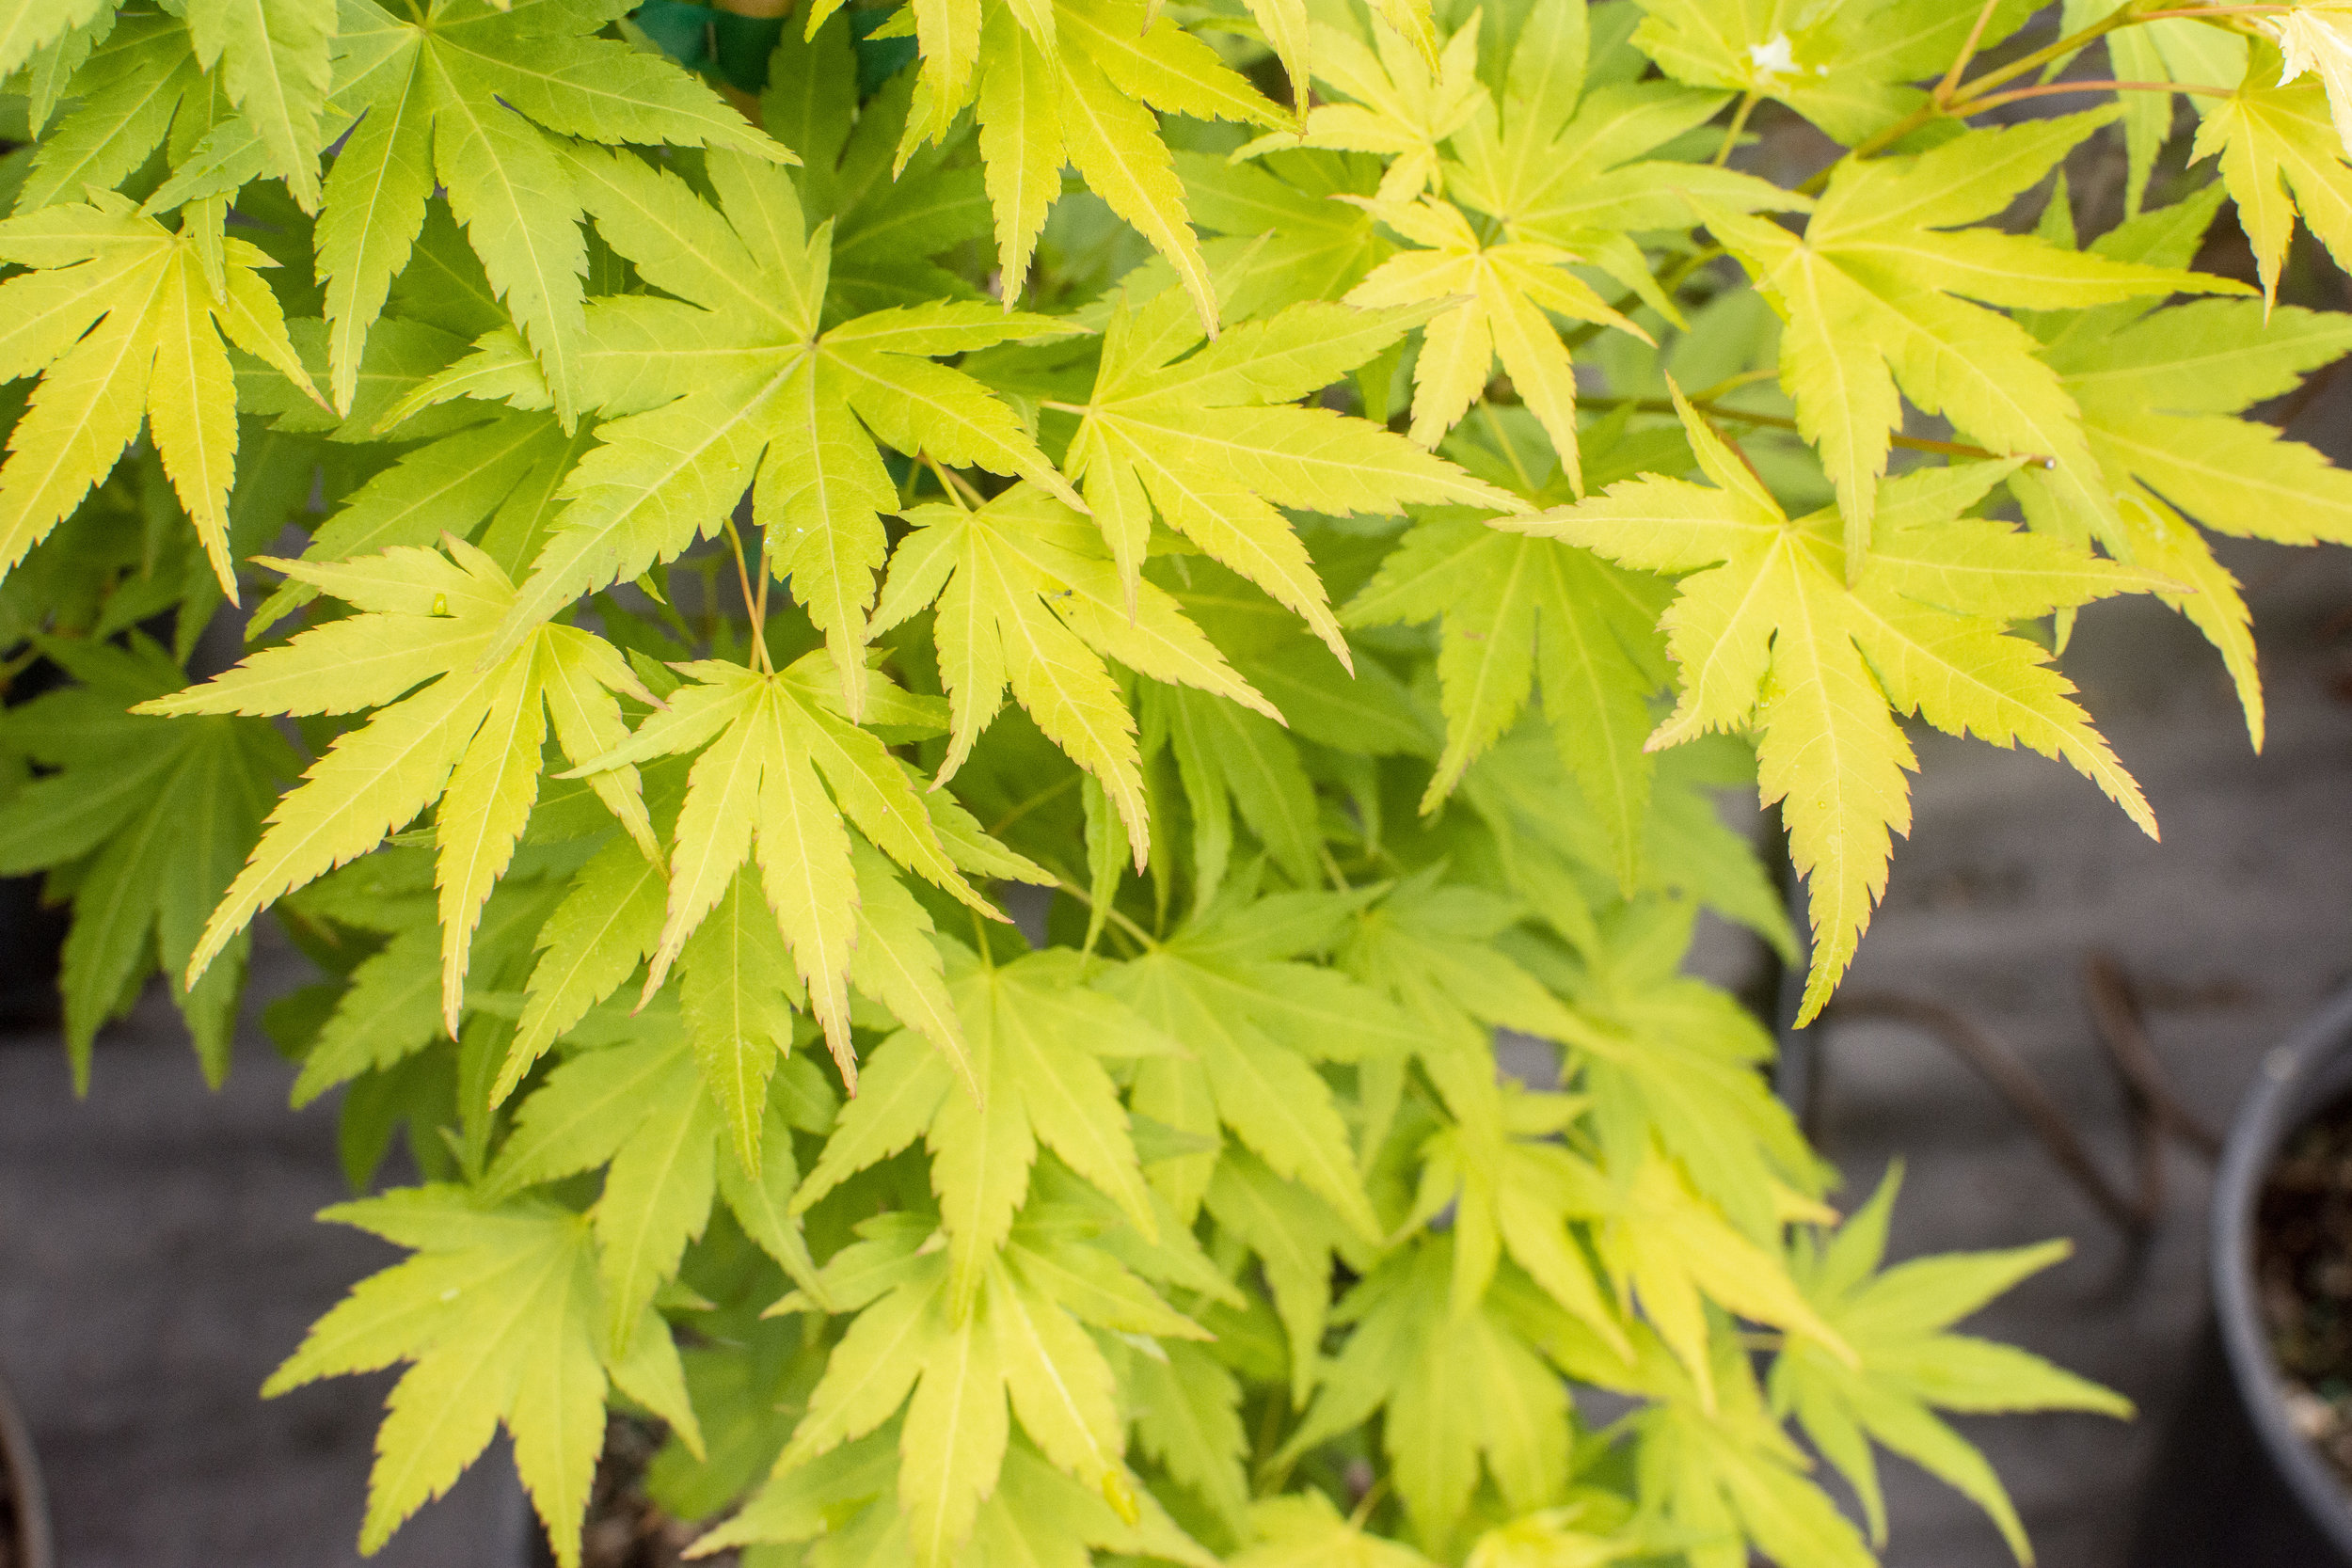 ACER p. 'Orange Dream' - Upright tree with golden-yellow leaves in spring, bright green in summer and orange-yellow in autumn.Mature size: 10'